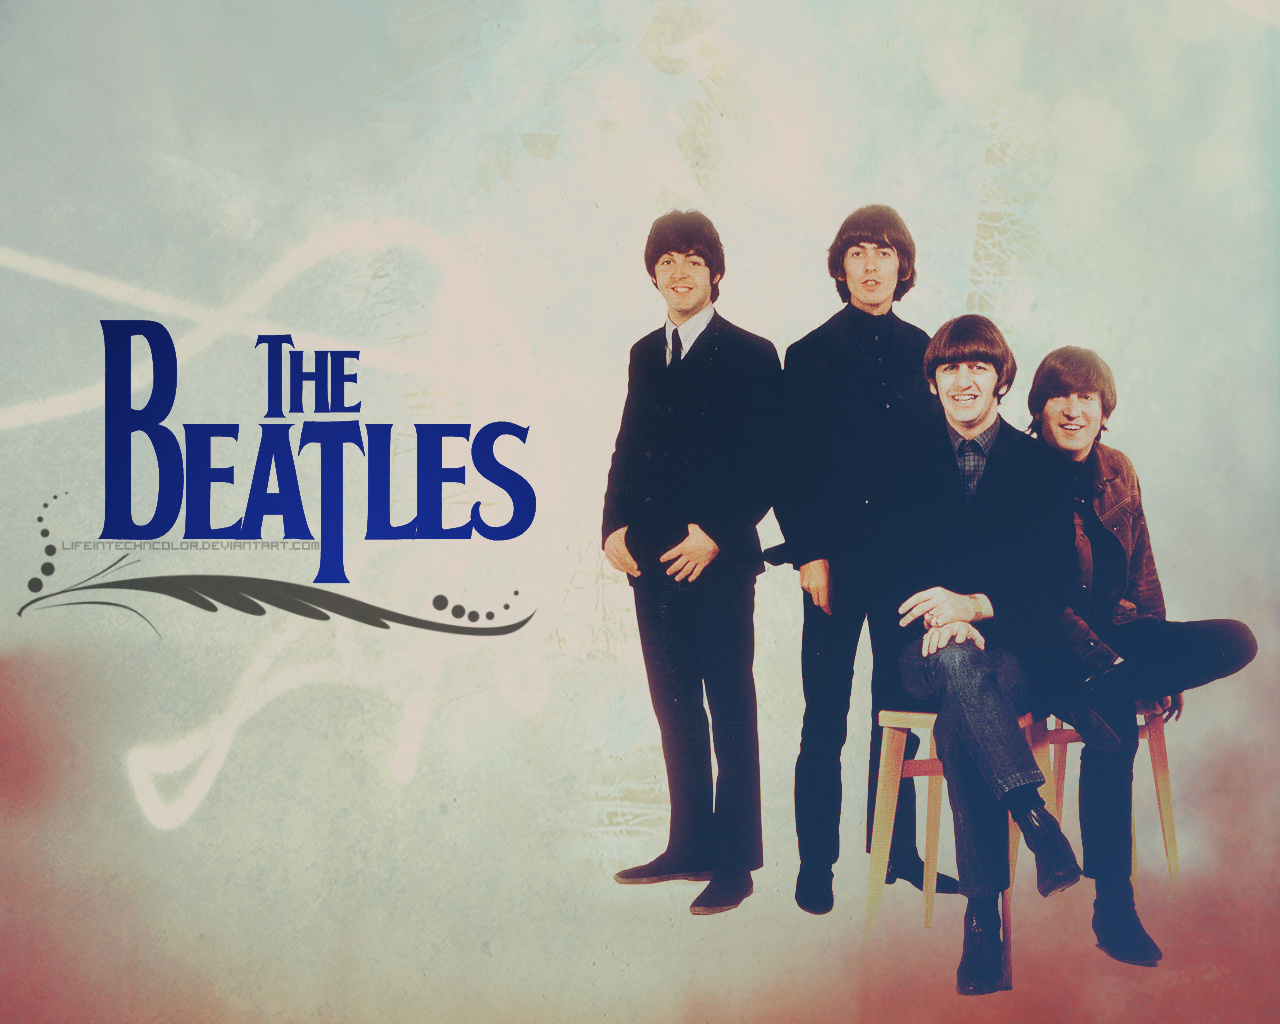 The Beatles Wallpapers Hd 1280x1024